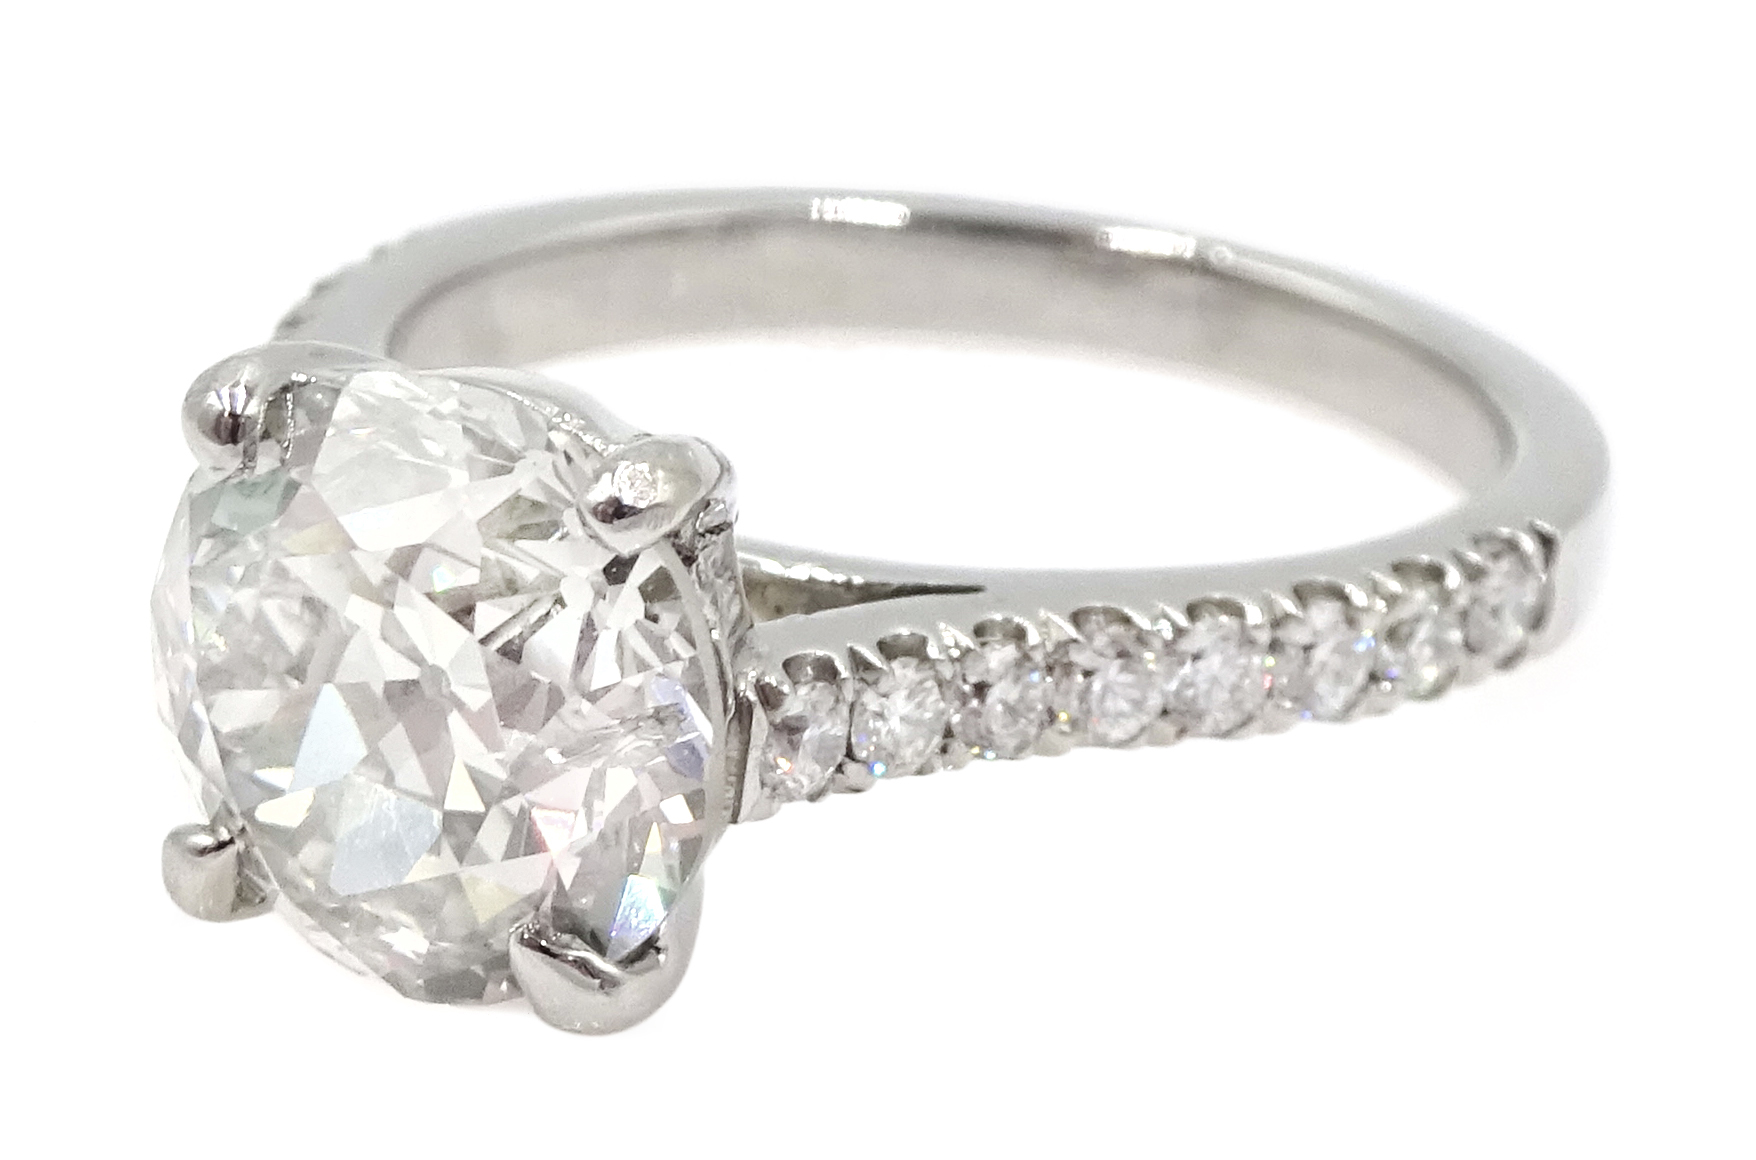 Platinum old cut diamond solitaire ring with diamond set shoulders, hallmarked, central diamond 2.10 - Image 4 of 9